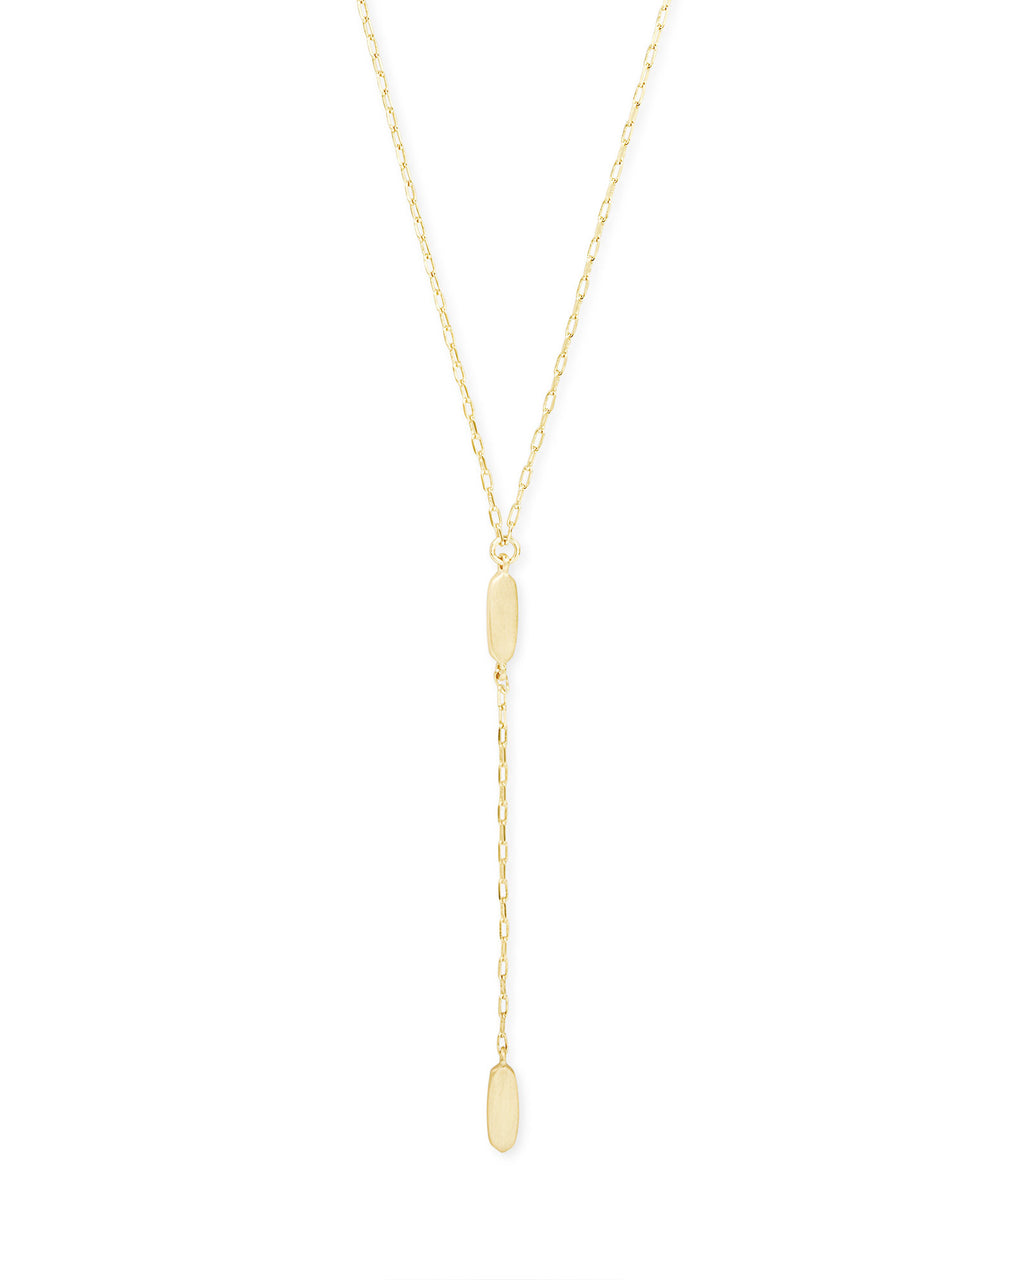 Fern Y Necklace - Gold